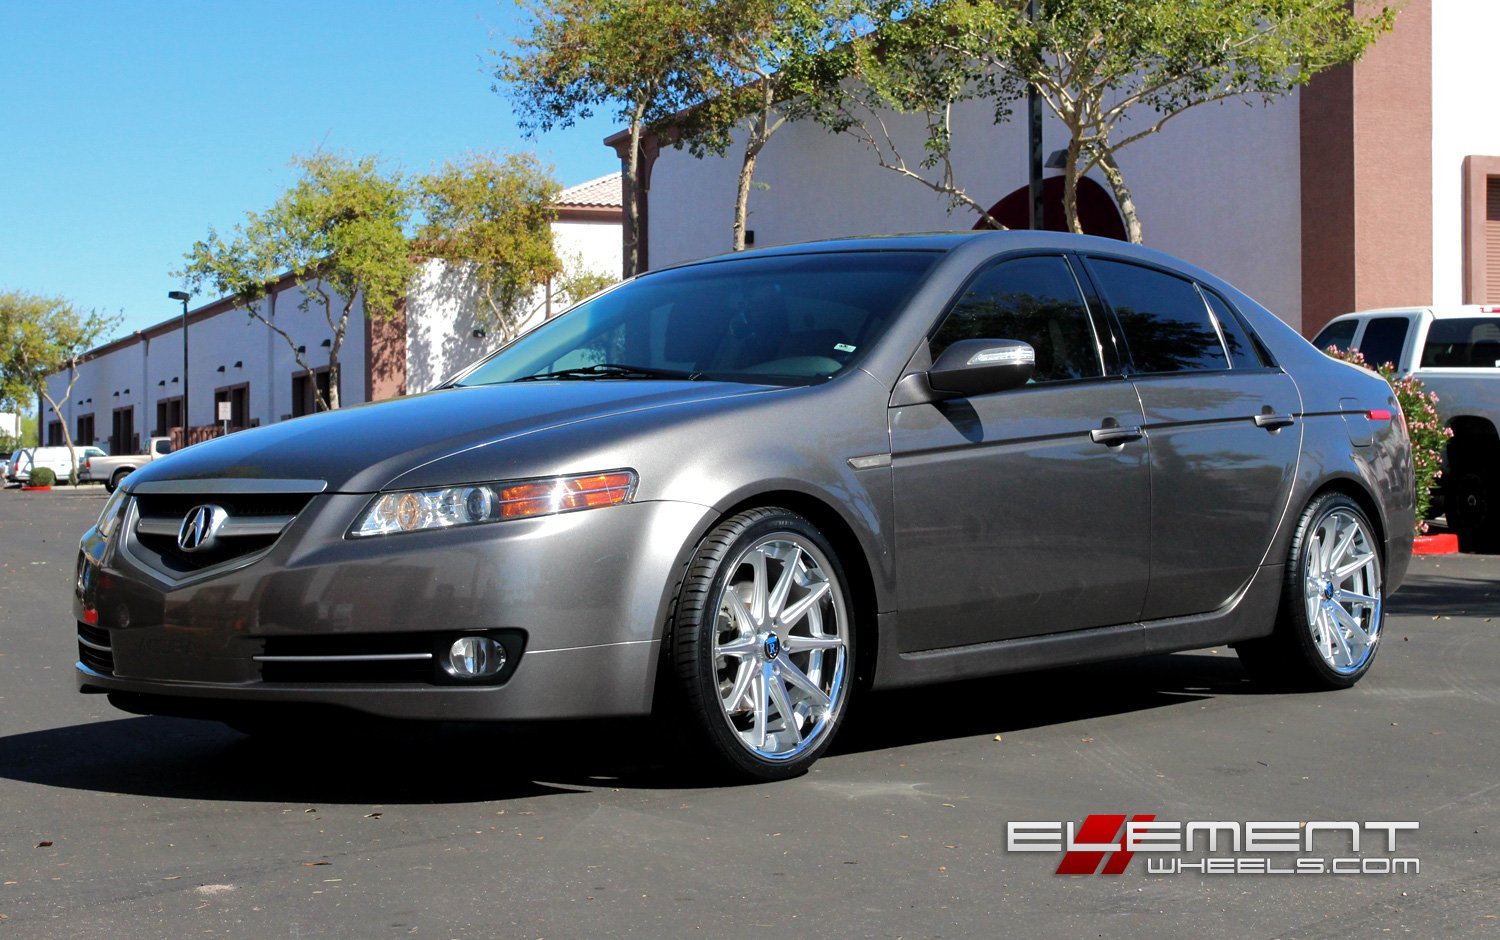 Rohana RC Staggered On Acura TL W Specs Element Wheels - 2004 acura tl wheel size